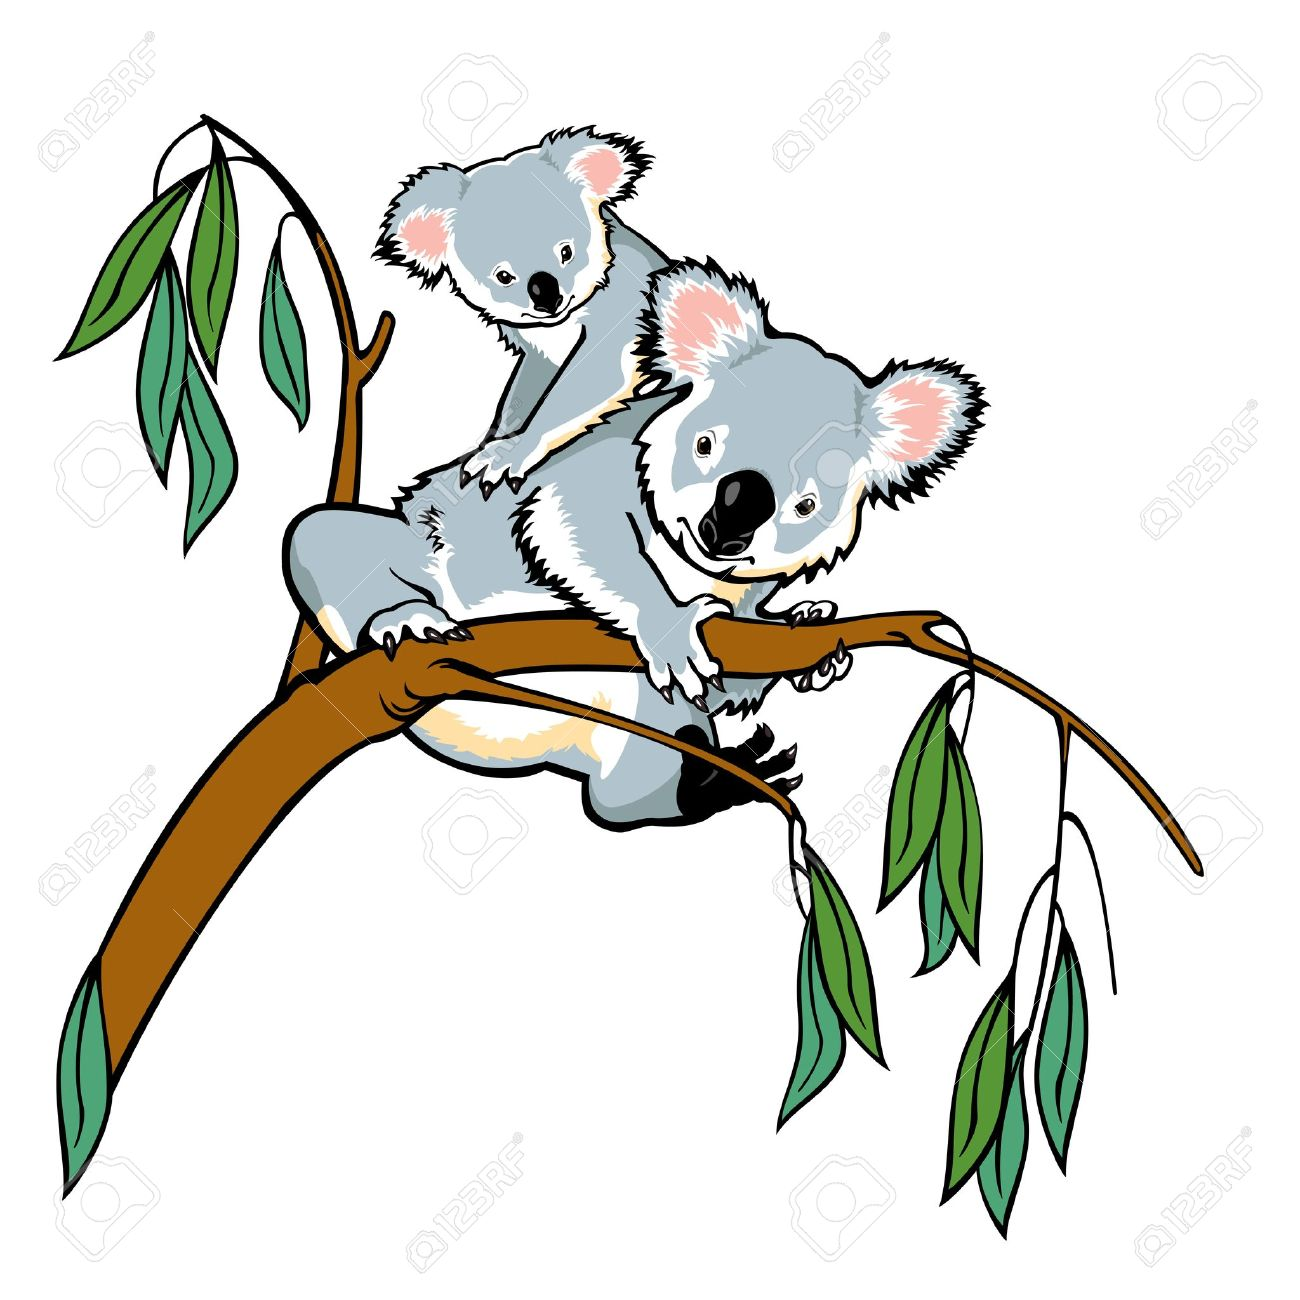 koala with joey climbing eucalyptus tree picture isolated on rh 123rf com koala clipart free koala clipart cute